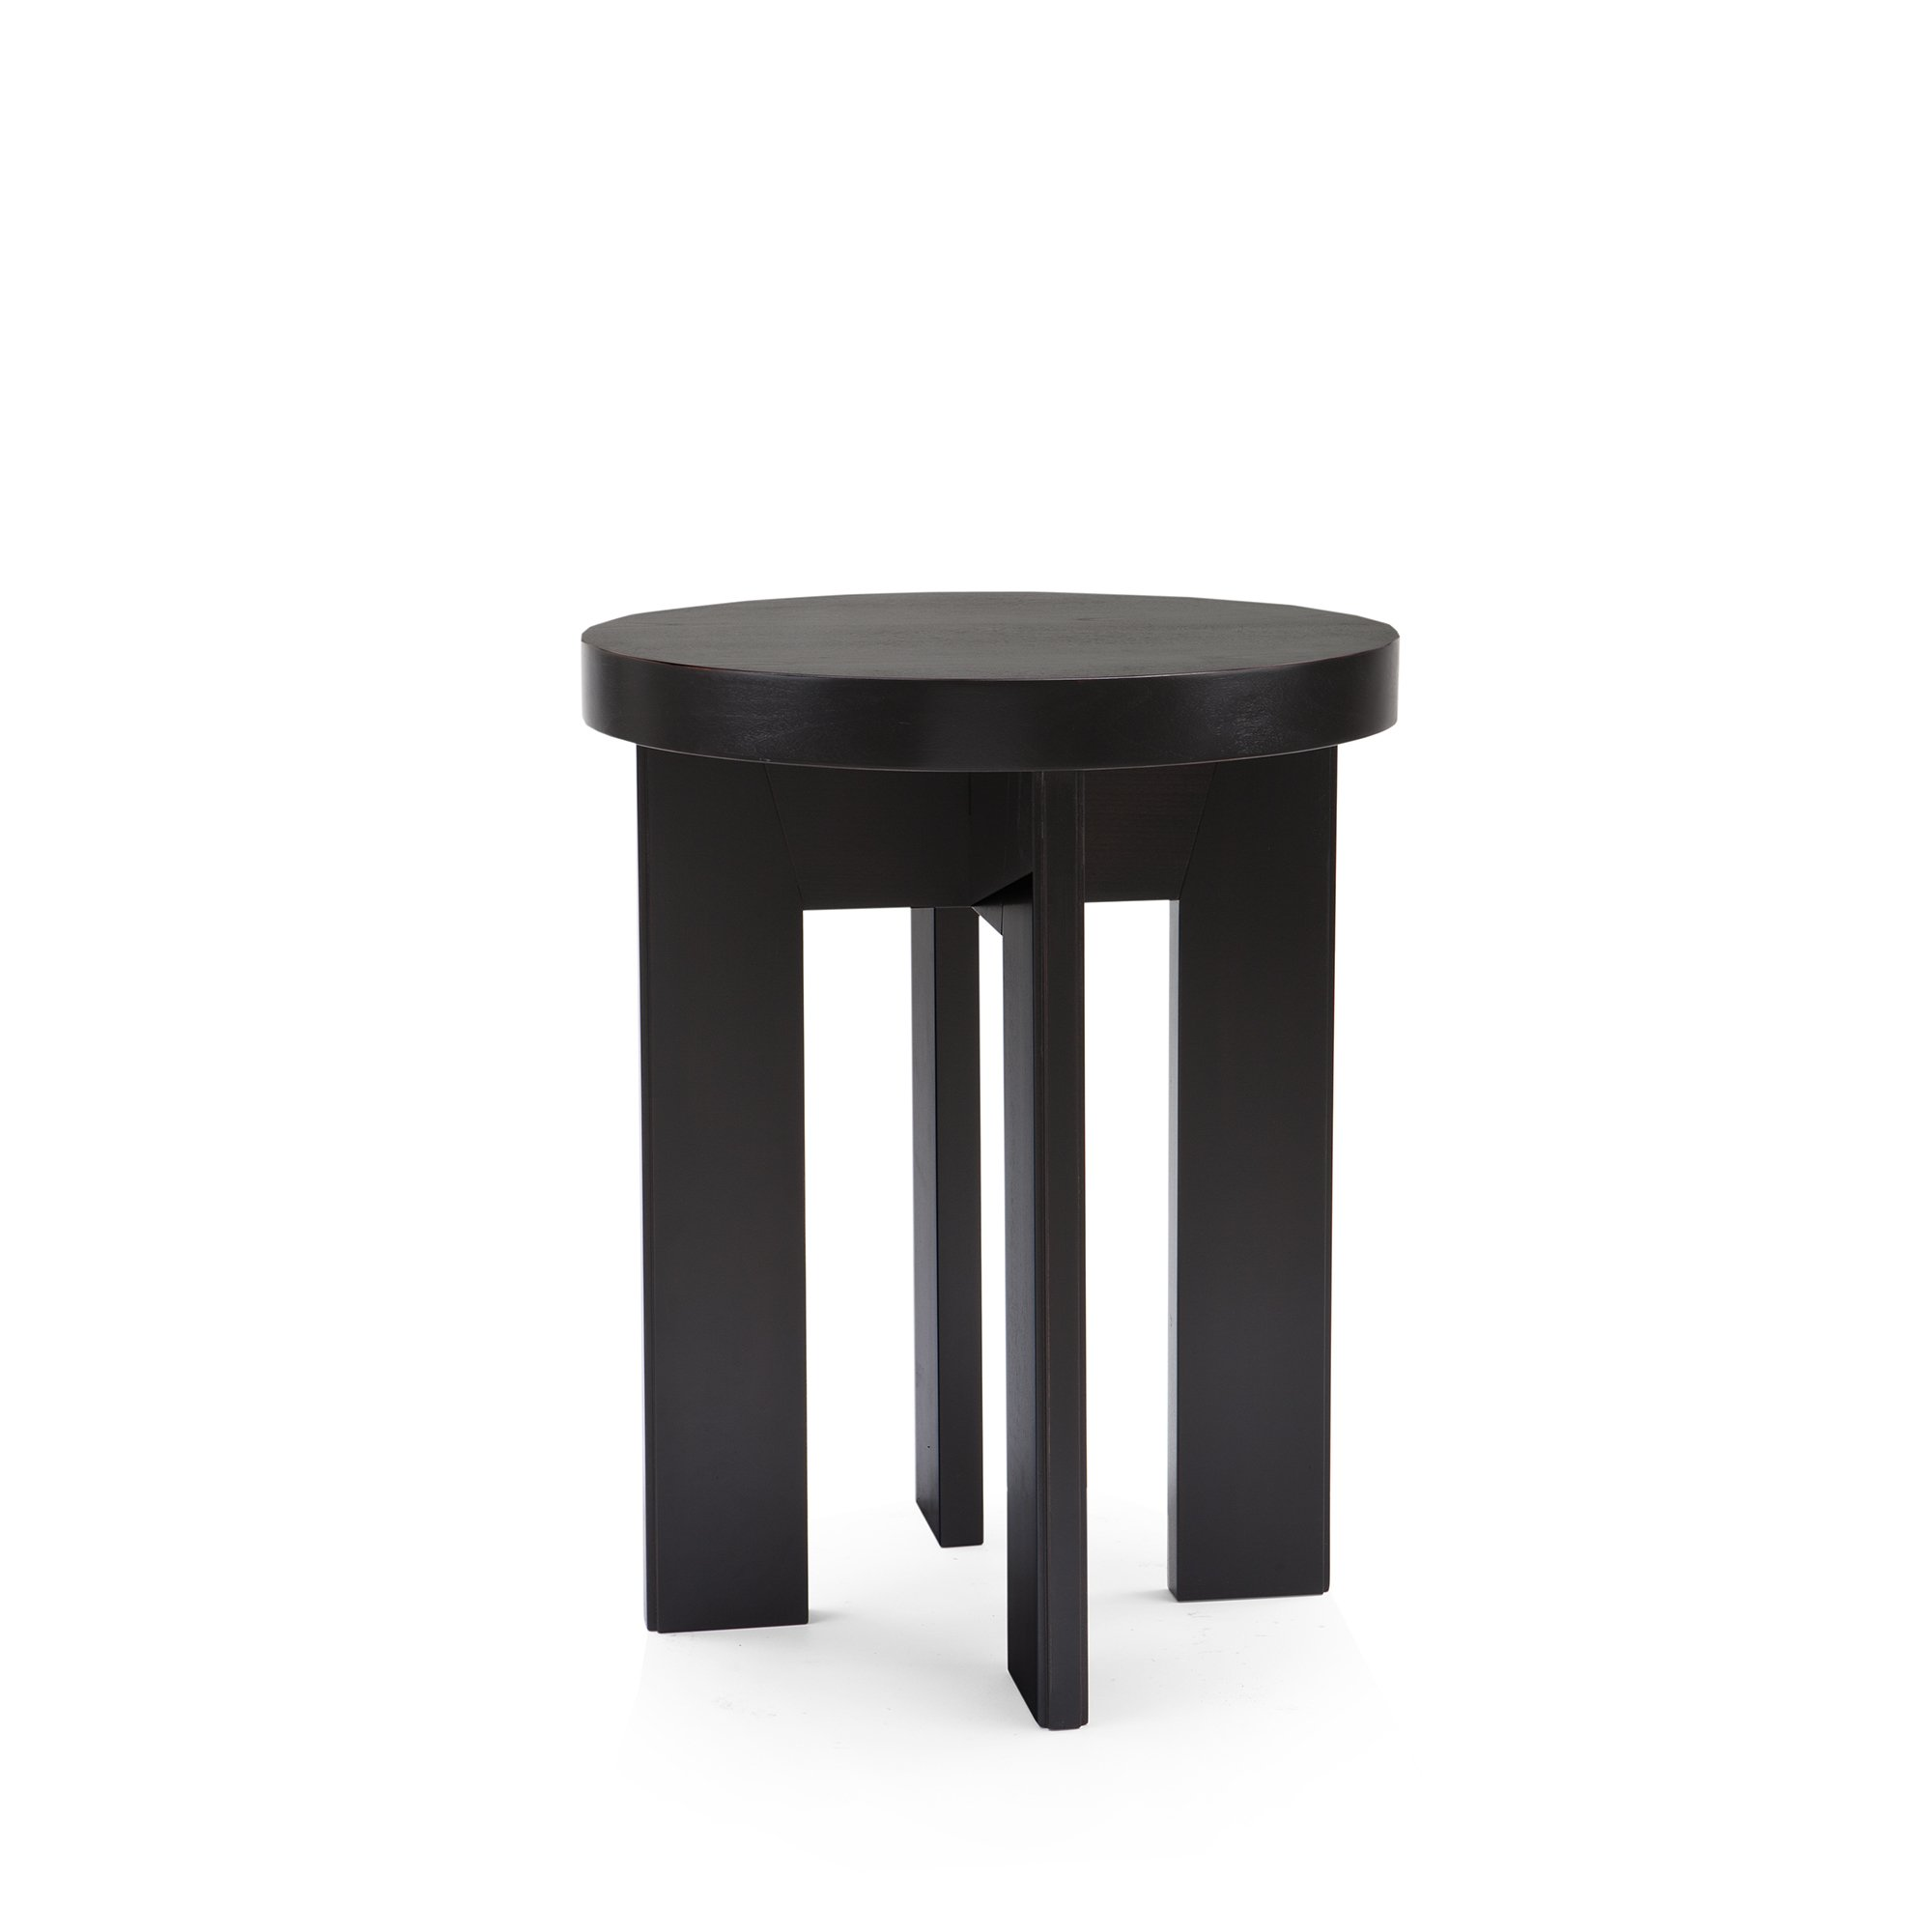 tao kenley dark brown round end table free shipping today accent narrow small entry white bedroom lamps square glass gold coffee tables and black acrylic modern mirrored corner